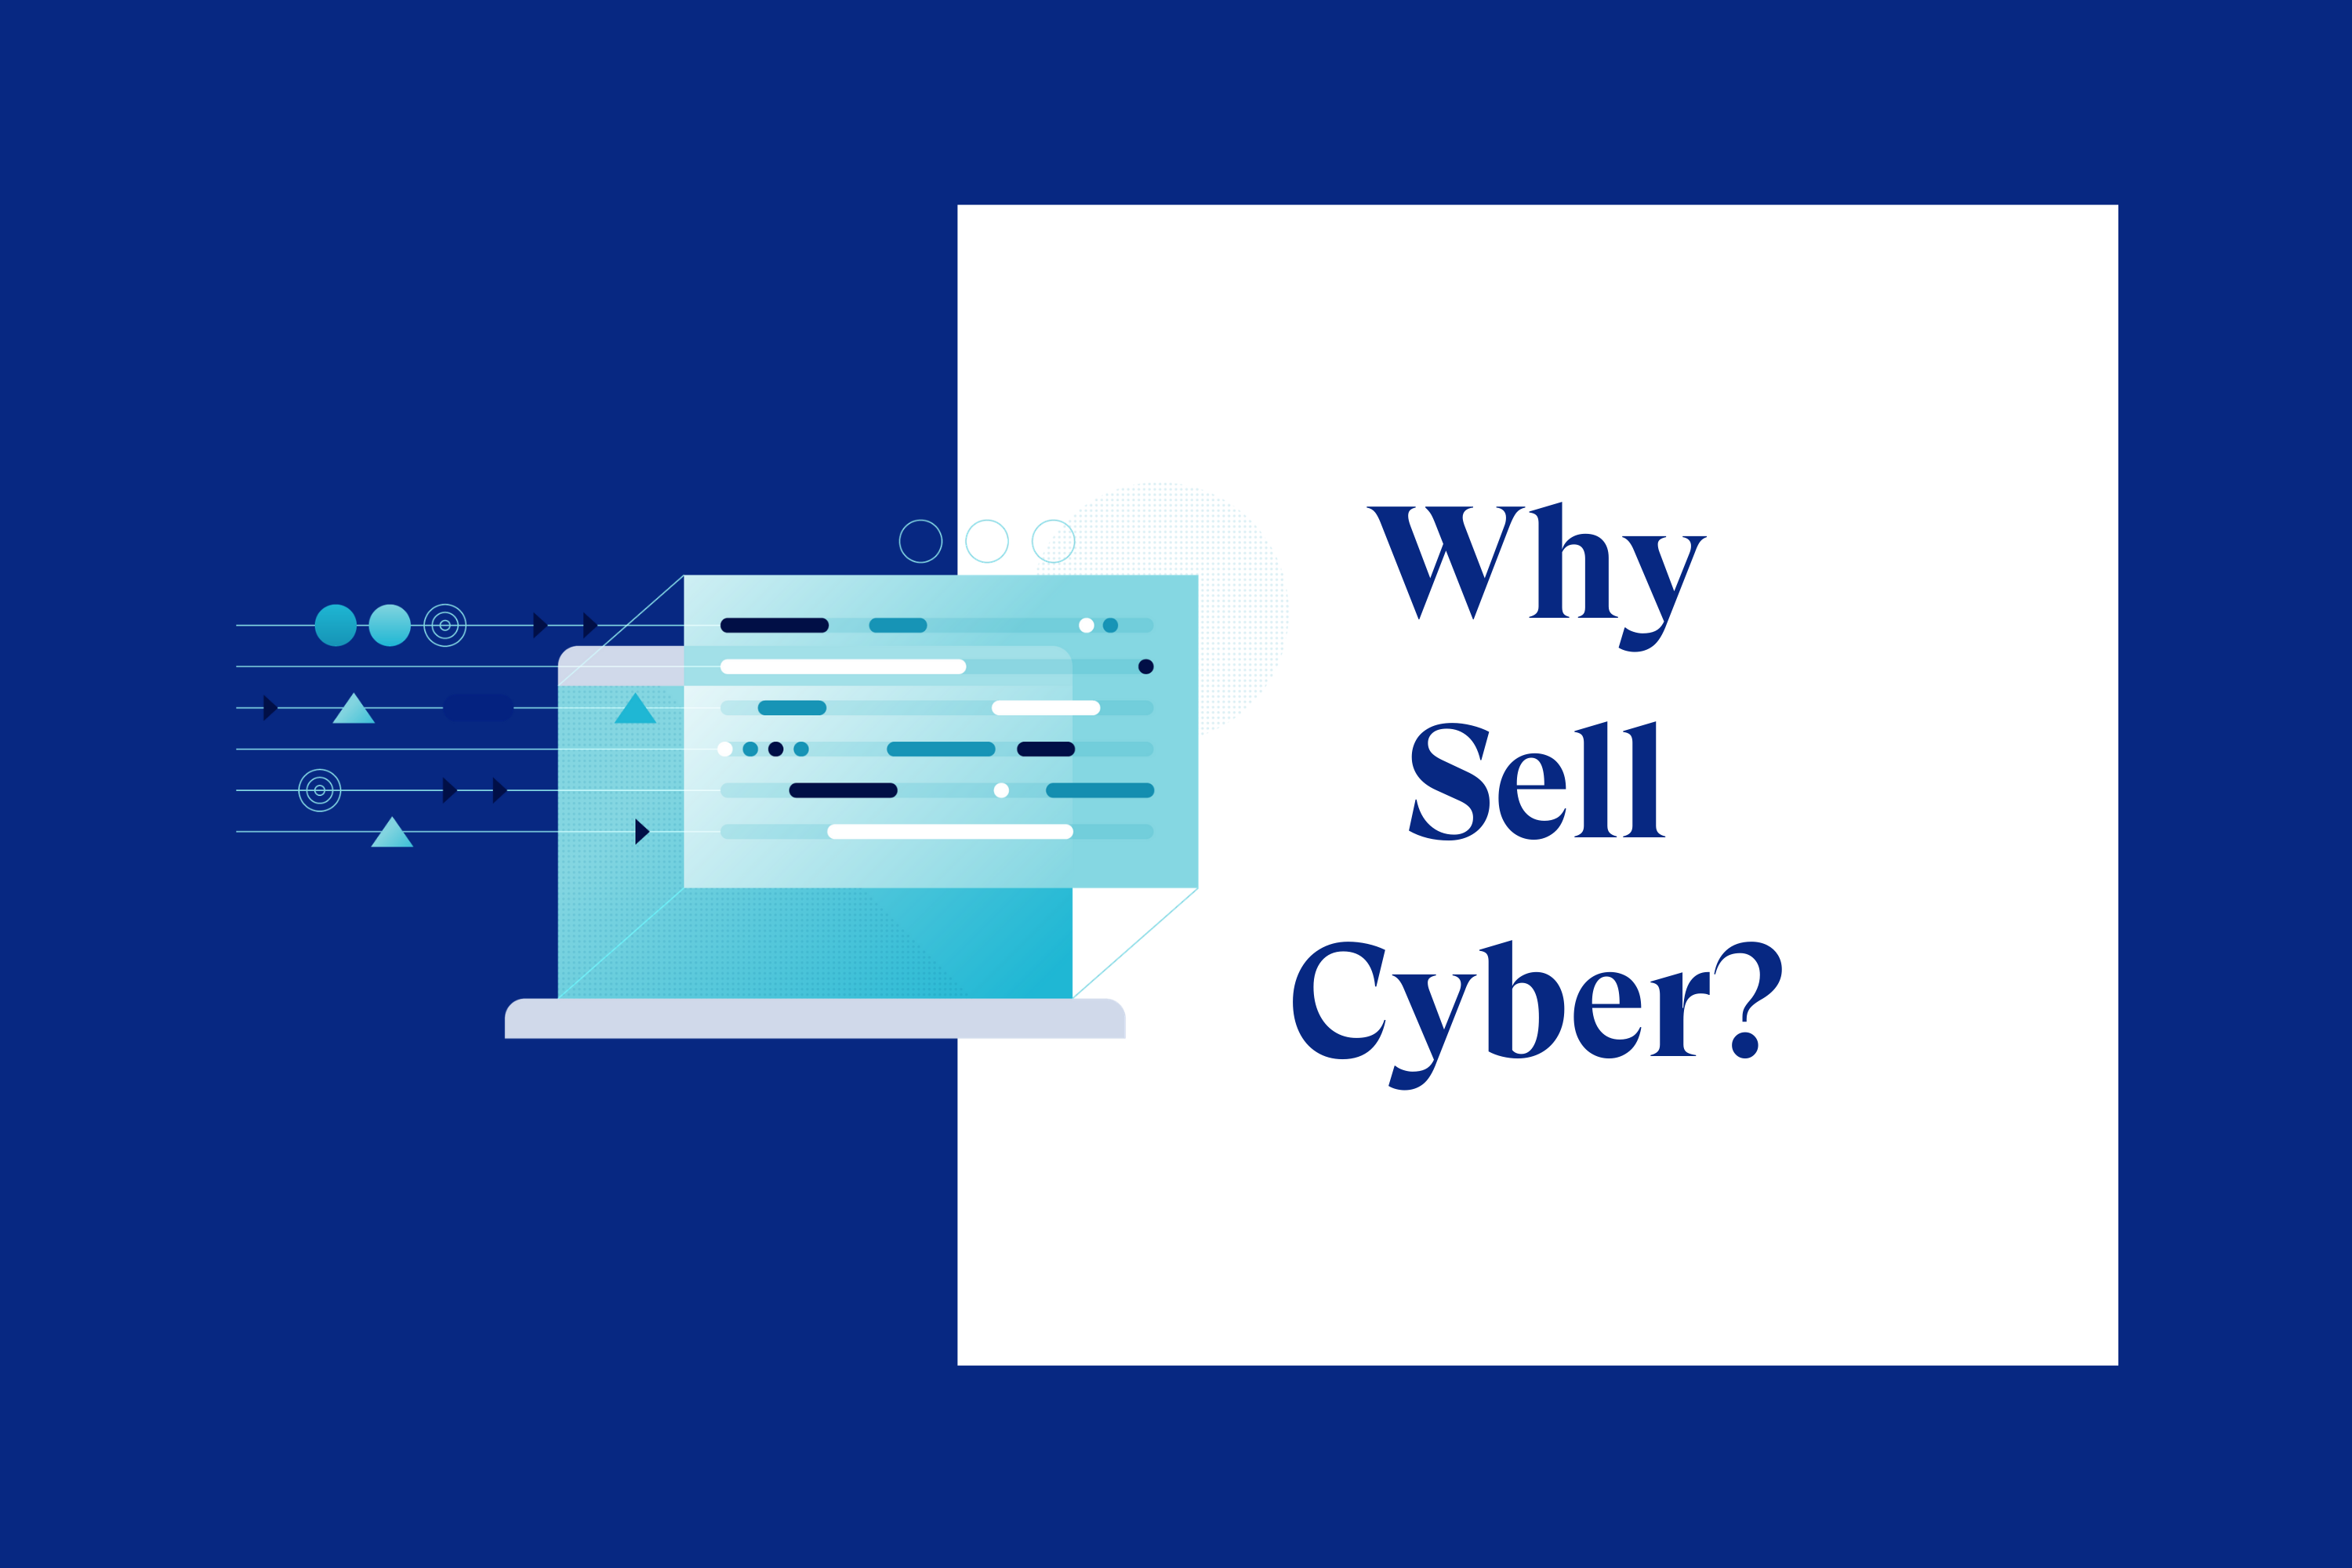 Why Sell Cyber?